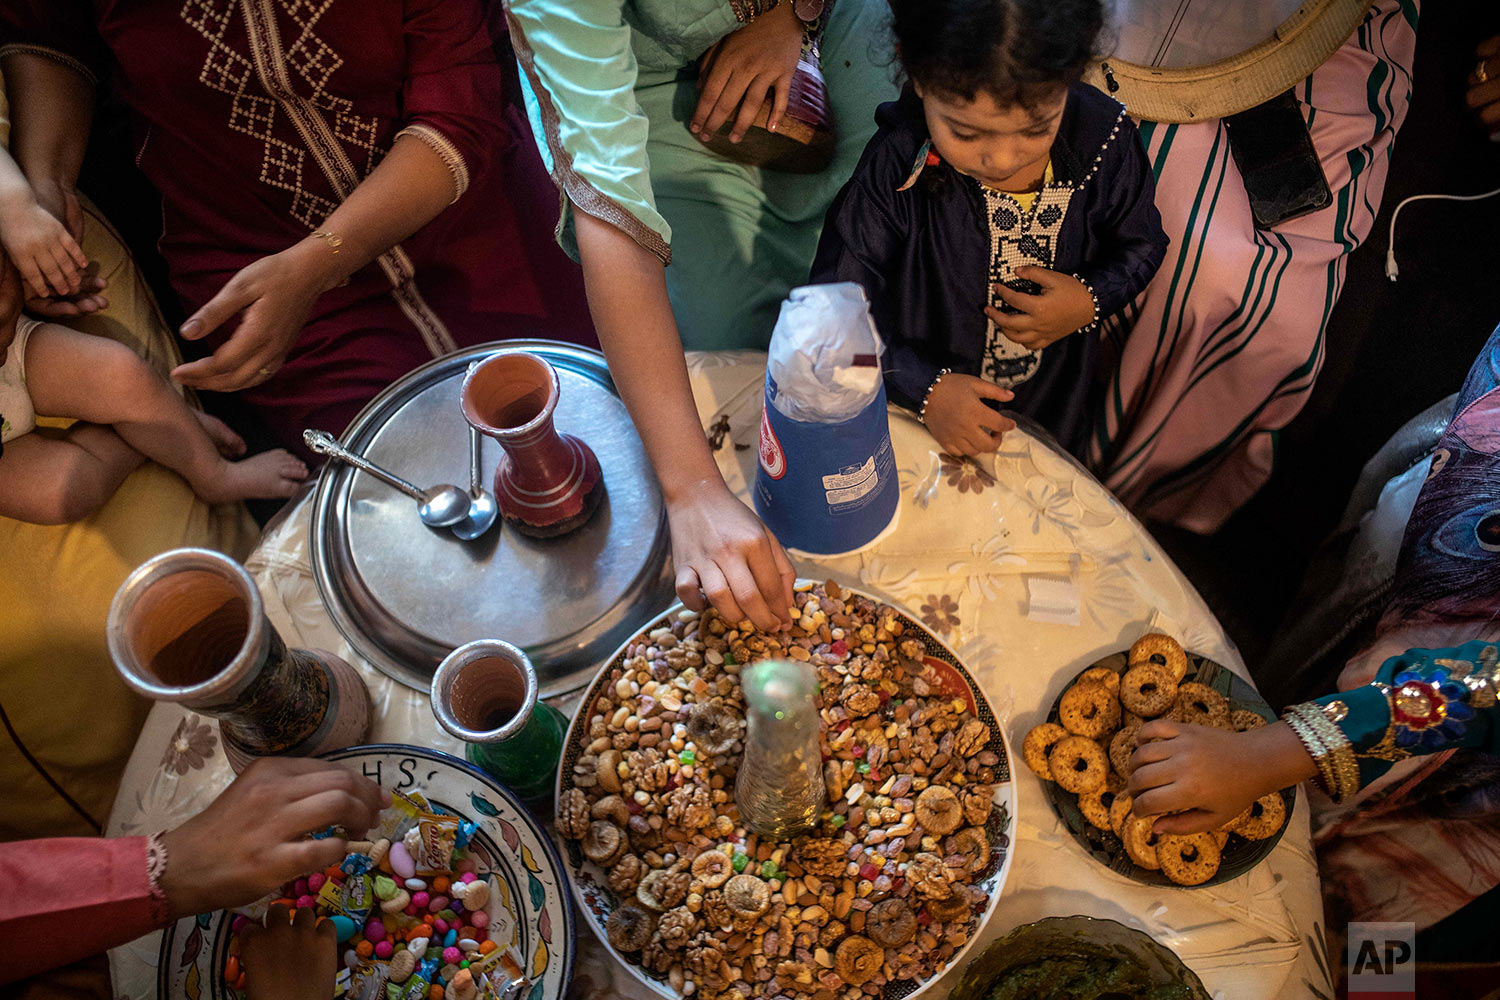 Woman and children eat dried fruits and treats at a home to celebrate the occasion of Ashura, in Sale, near Rabat, Morocco, Sept. 10, 2019. (AP Photo/Mosa'ab Elshamy)